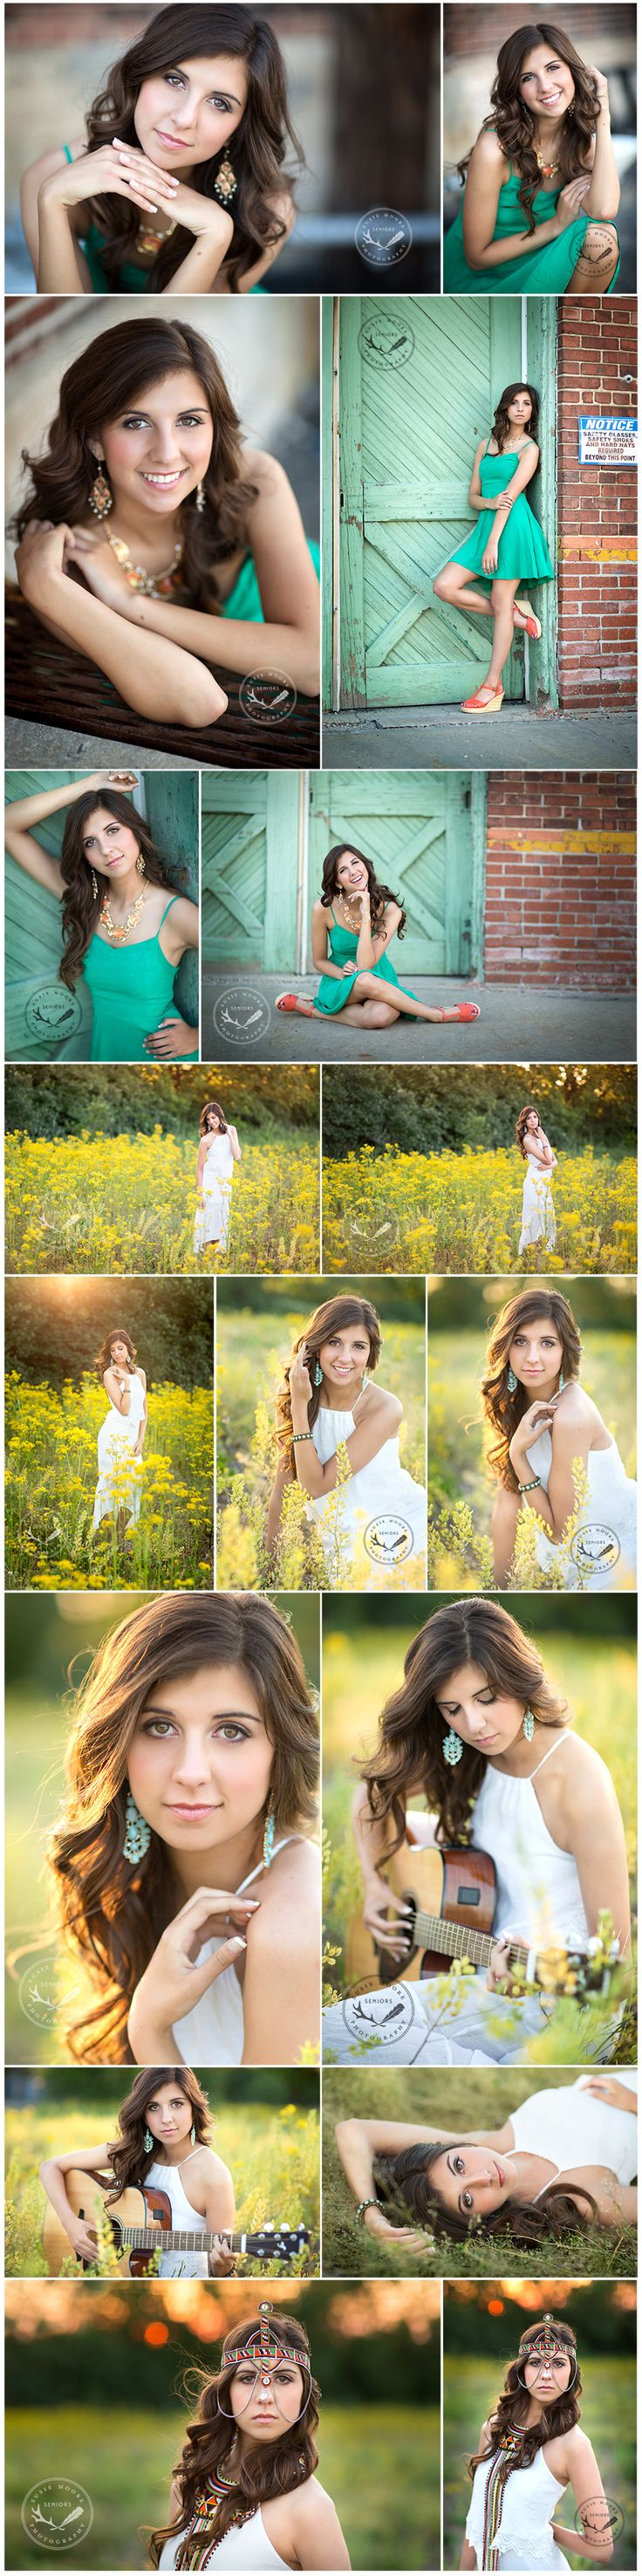 Stephanie | Class of 2015 | Indianapolis Senior Pictures | Senior Photography